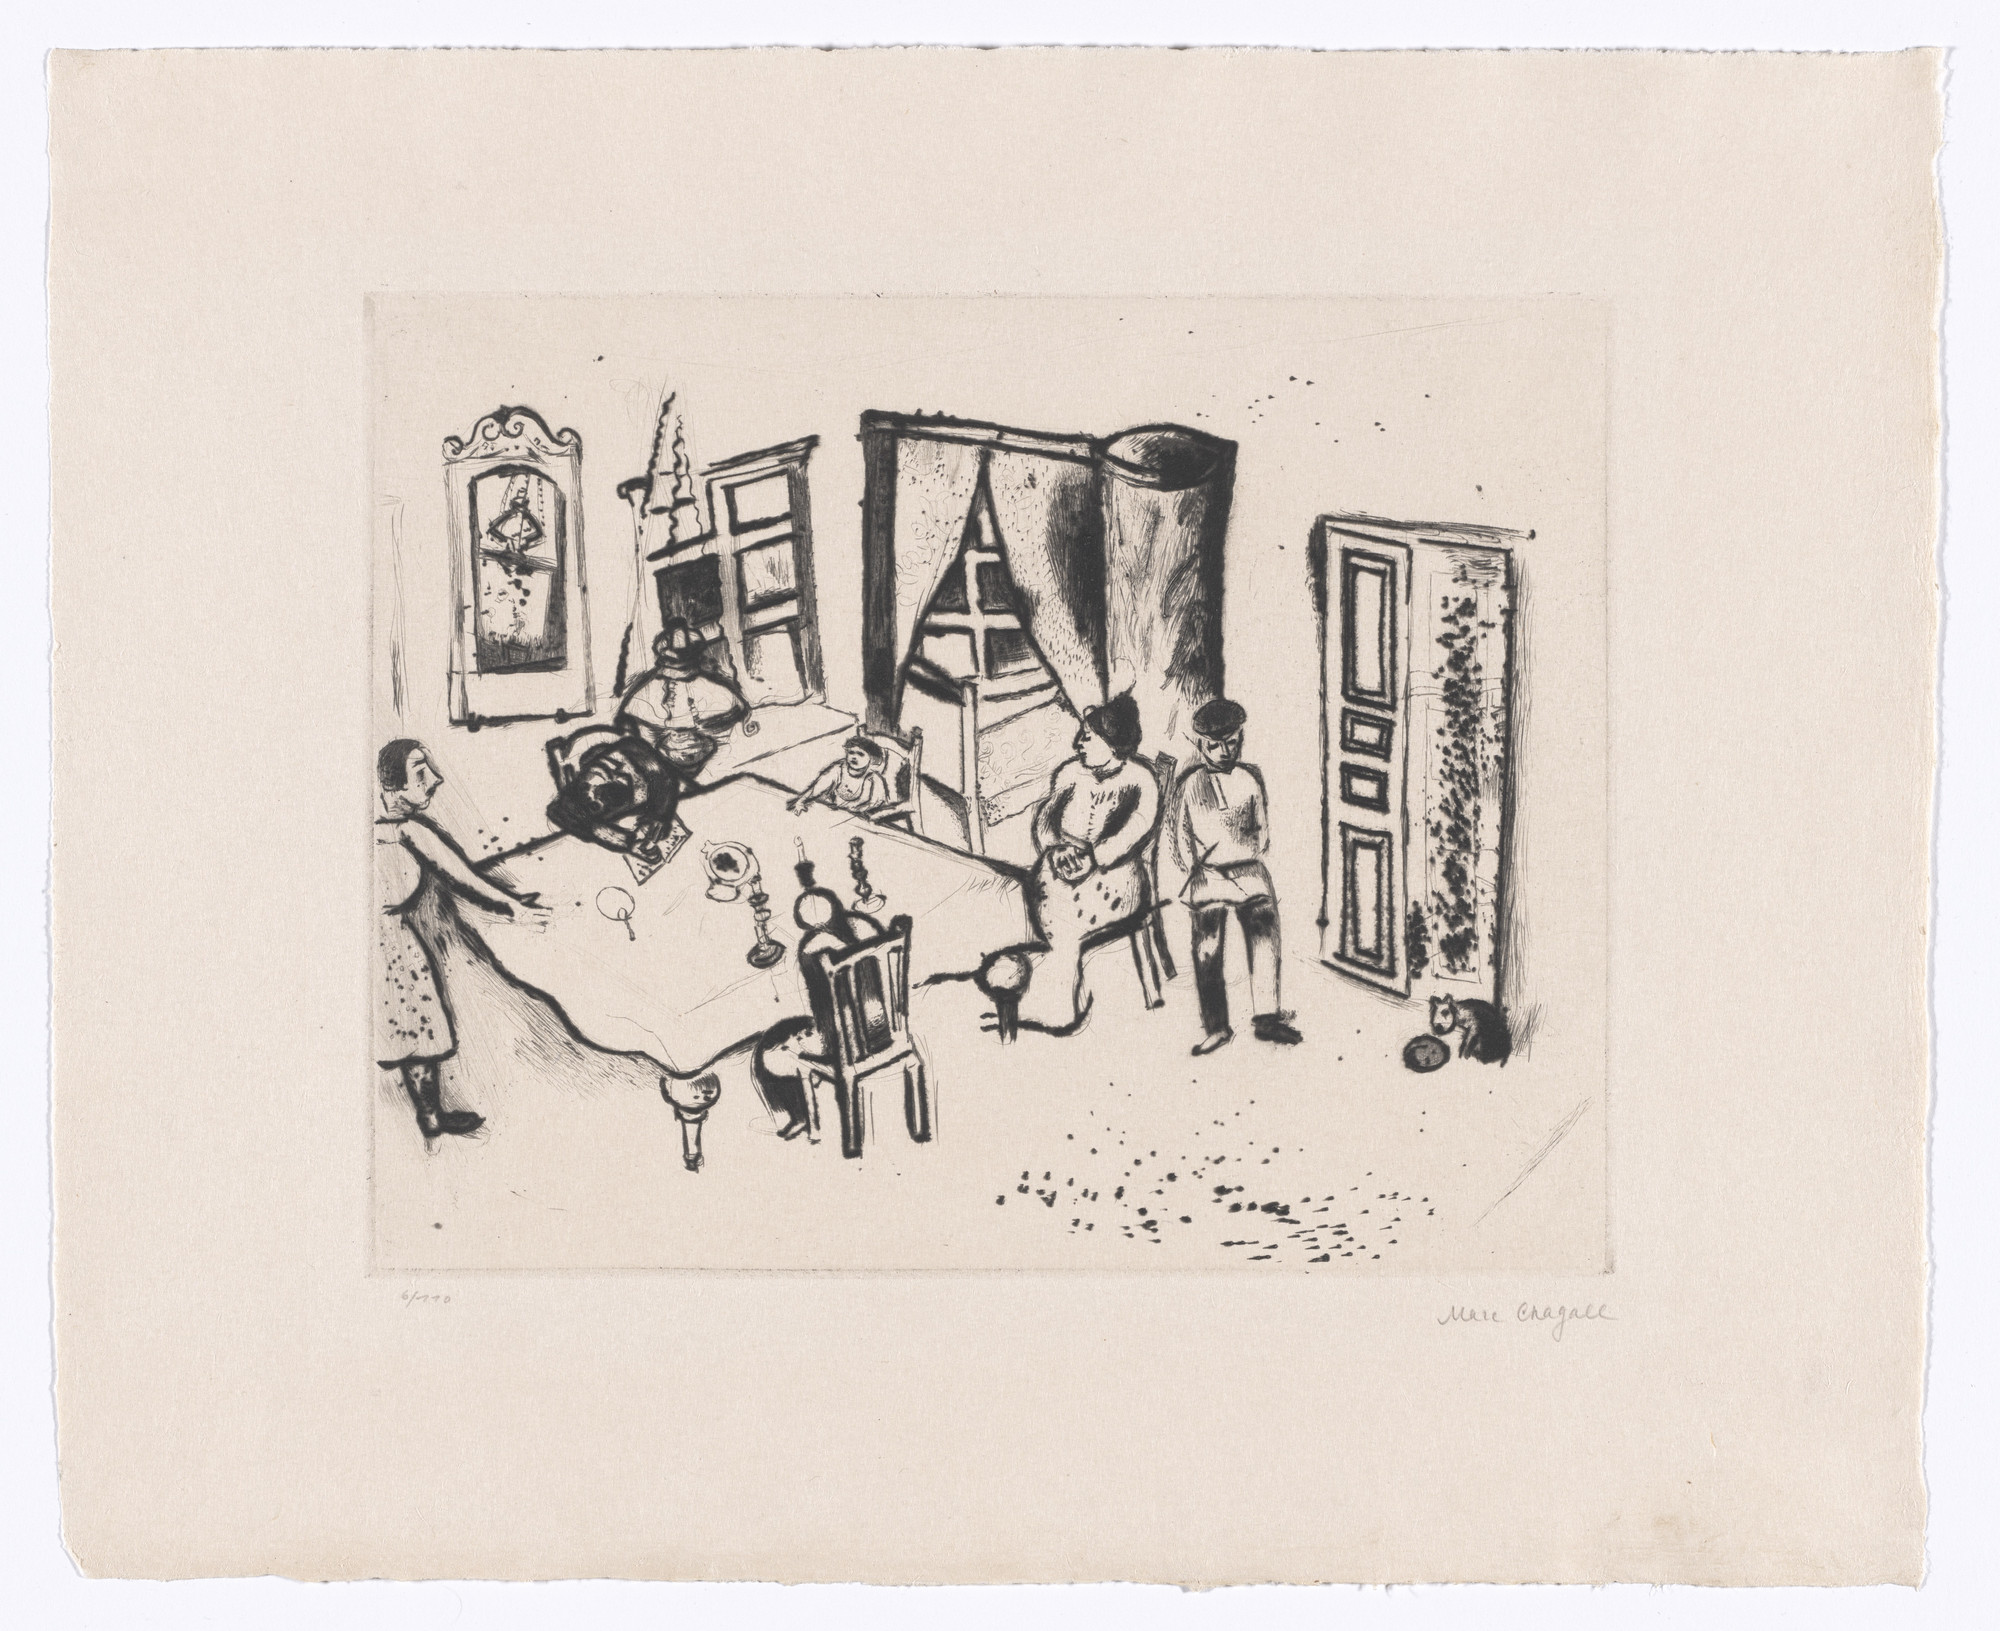 Marc Chagall. Dining Room (Speisezimmer) from My Life (Mein Leben). 1922, published 1923